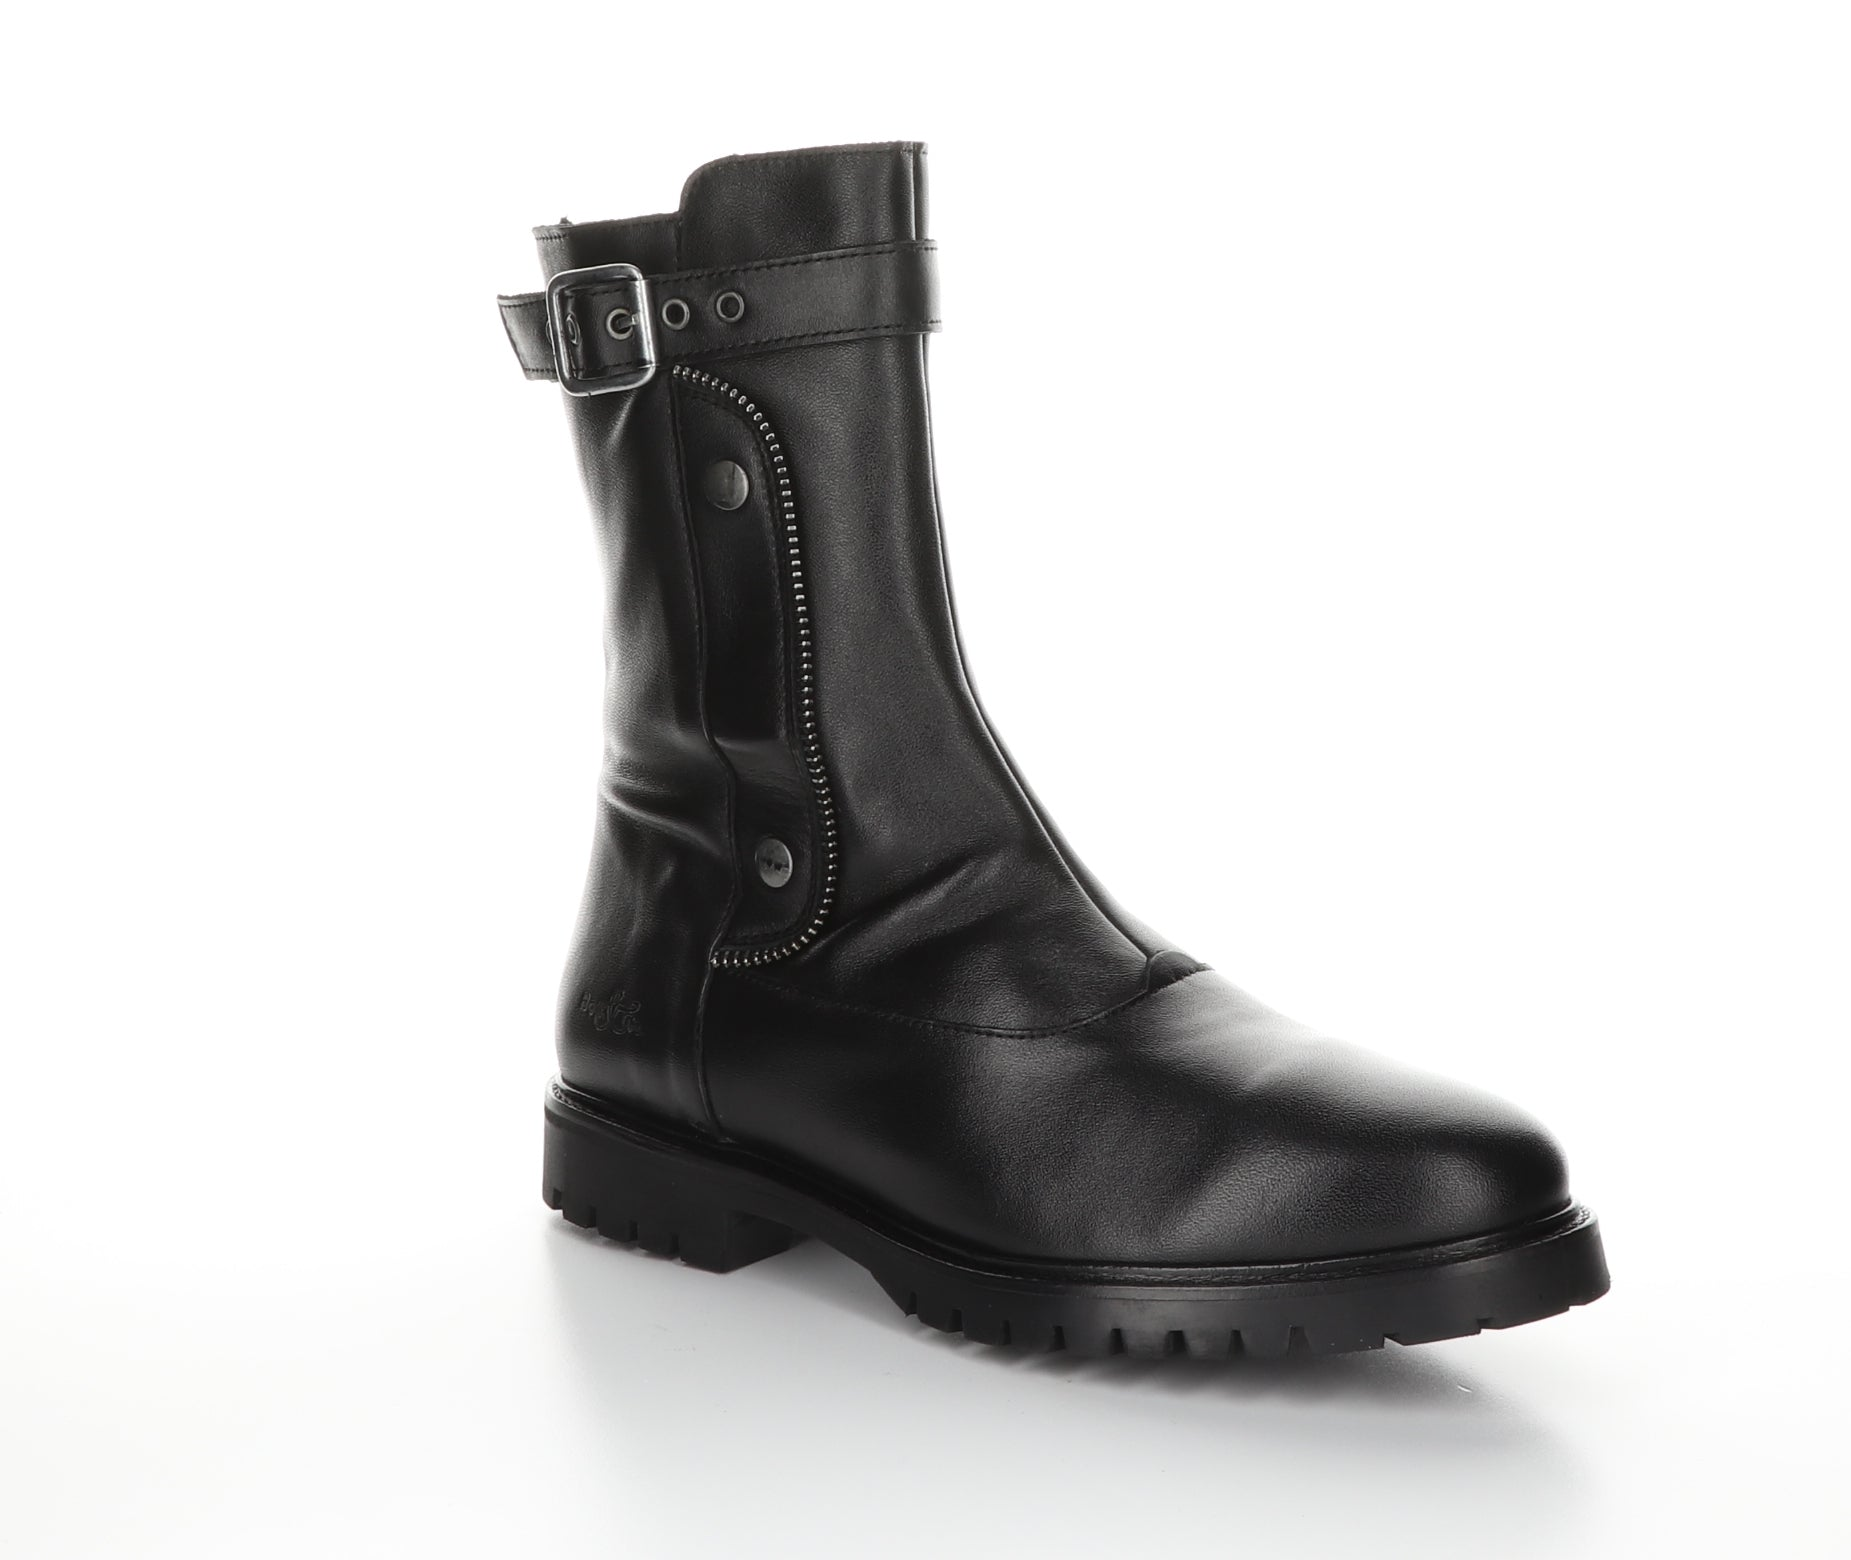 Bos and Co BASH Women's Waterproof Boots